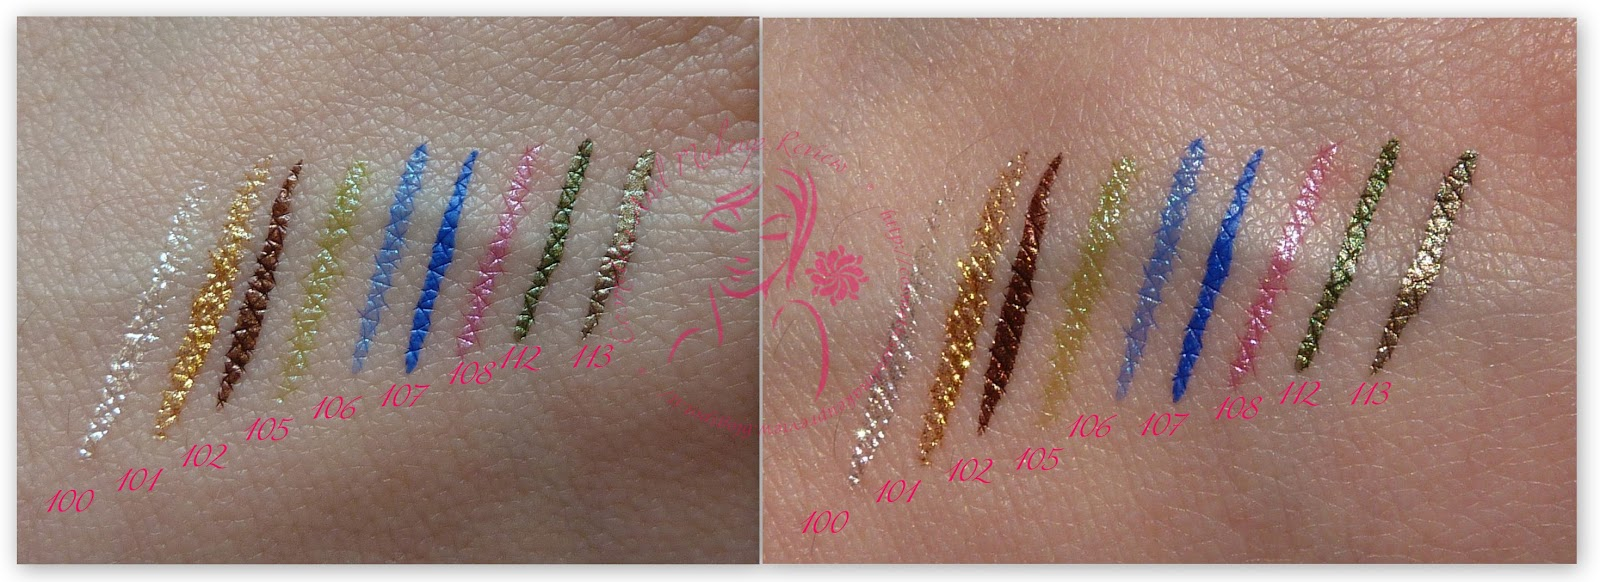 KIKO - Super Colour eyeliner - swatches frontali - a sinistra luce naturale indiretta, a destra luce naturale diretta